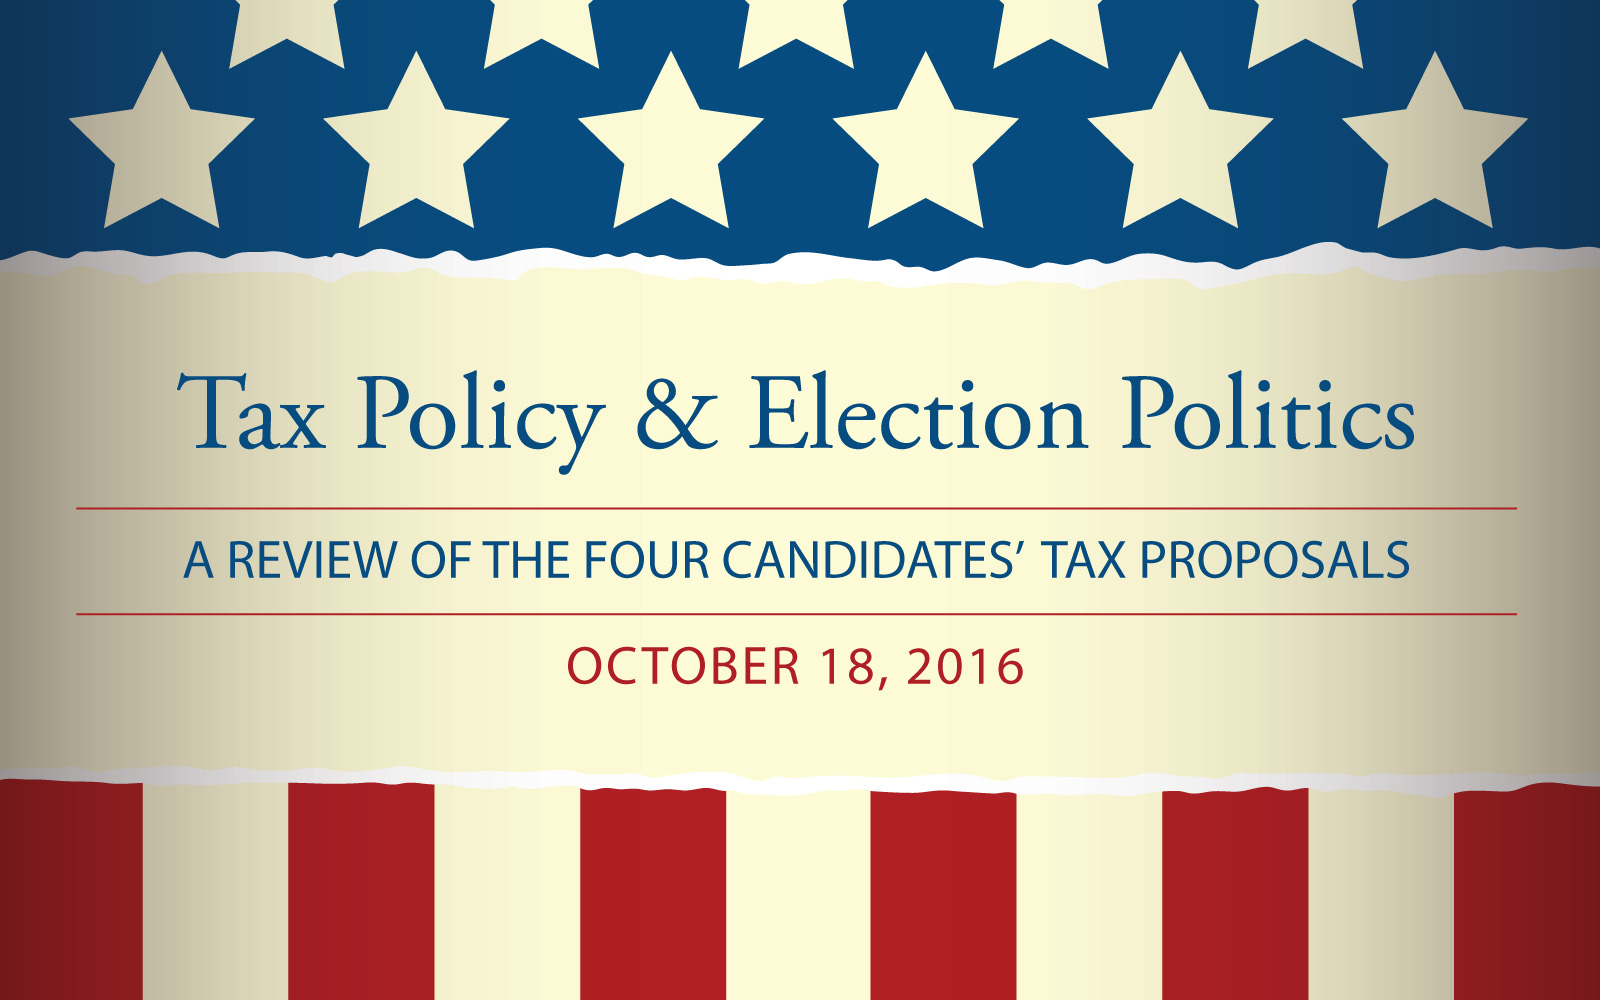 Tax Policy & Election Politics with Tax Experts & UConn Professors George Plesko and Amy Dunbar